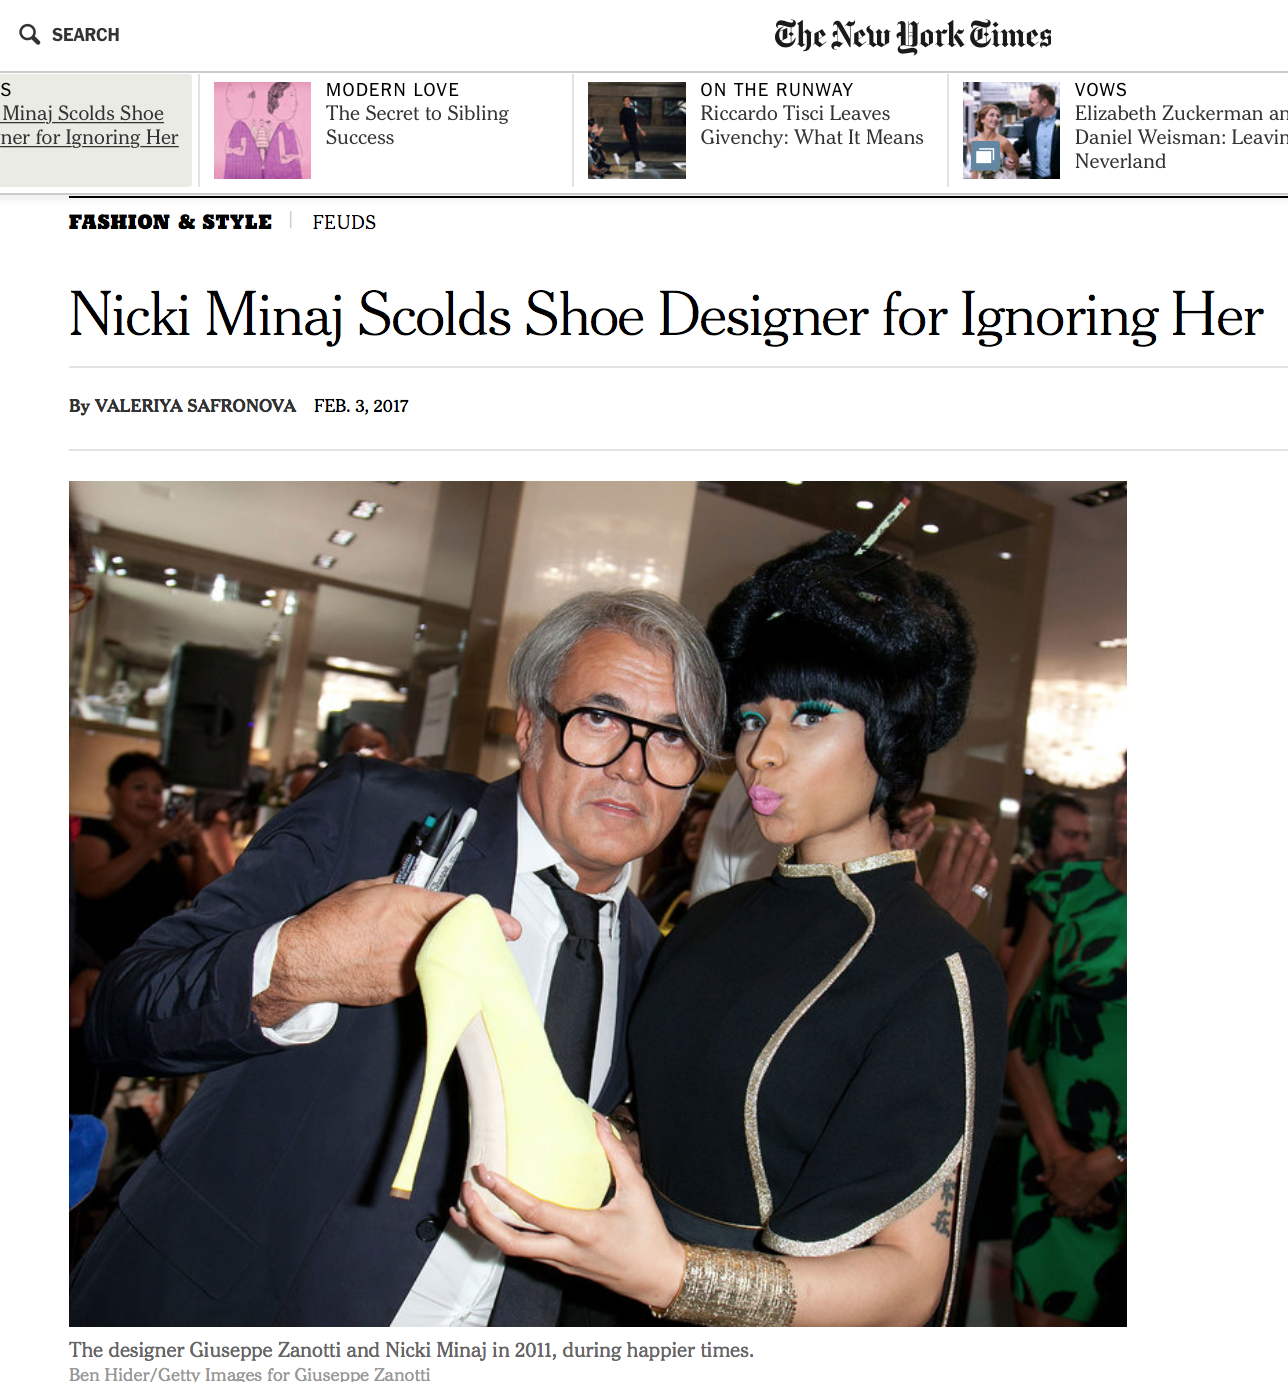 The designer Giuseppe Zanotti and Nicki Minaj in 2011, during happier times.  (Credit Ben Hider/Getty Images for Giuseppe Zanotti)